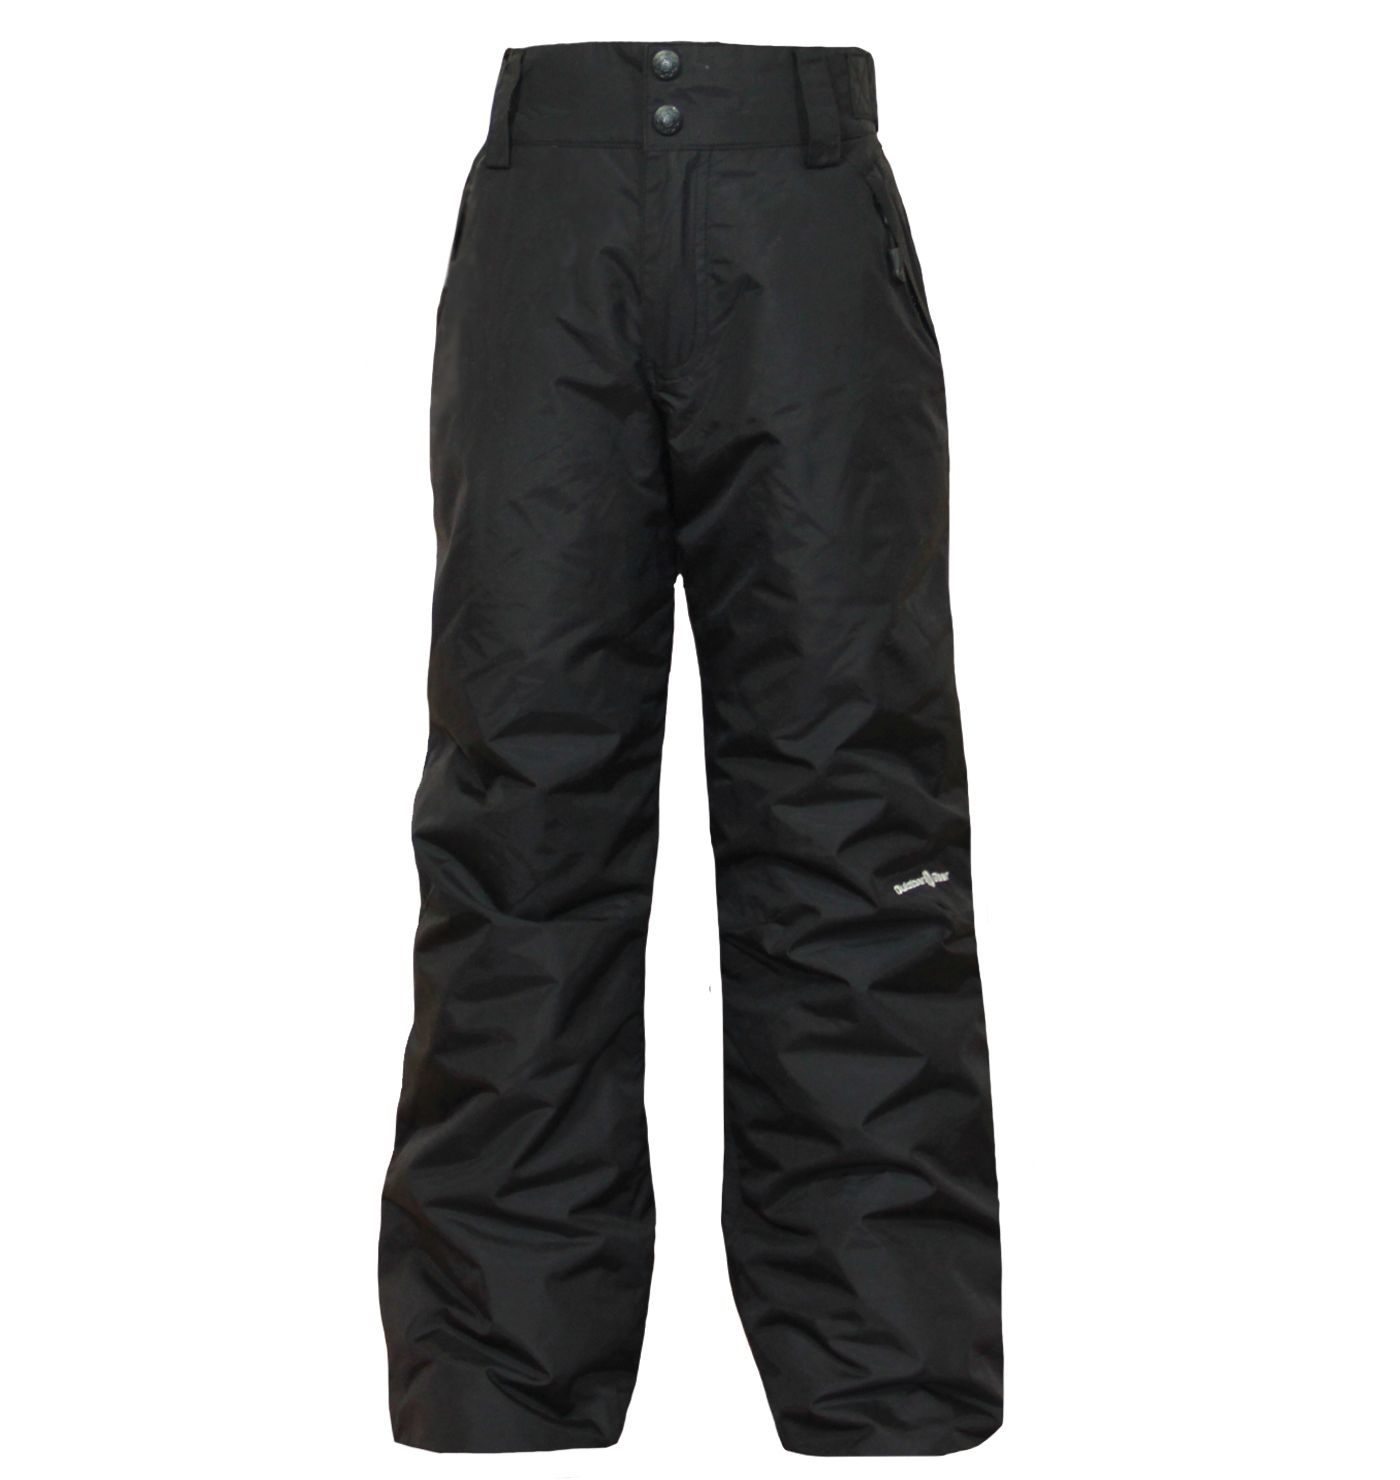 Outdoor Gear Kids' Crest Snow Pants